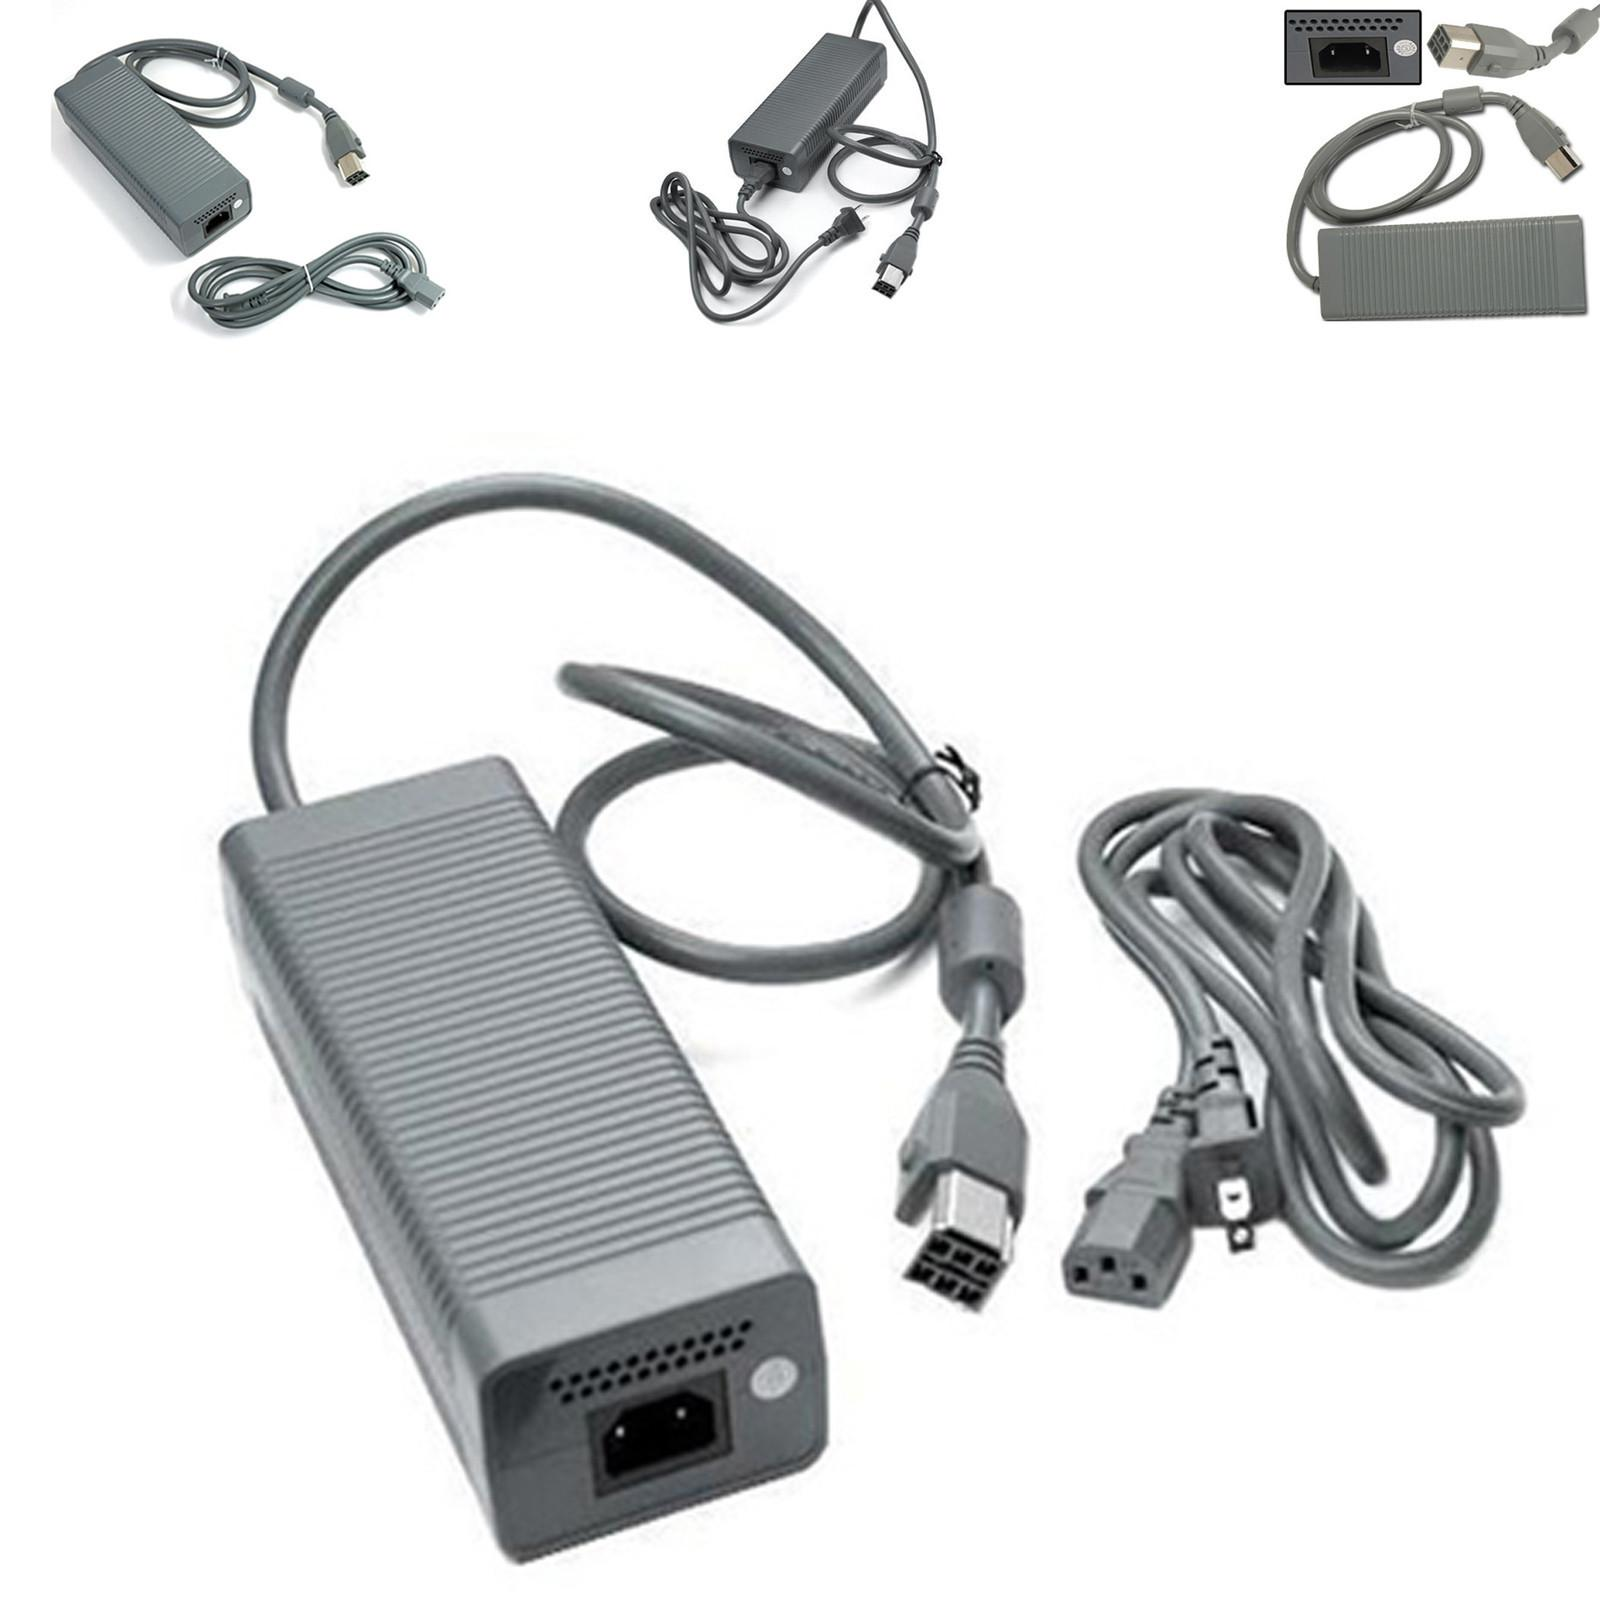 power-ac-adapter-for-xbox-360-console-original Xbox Ac Adapter Fuse on xbox 360 connector cable, xbox 360 demo cd, xbox 360 foot pedal, xbox 360 pc adapter, xbox 360 forza 3 g, xbox 360 headphone set, xbox 360 spin tires, xbox 360 connect to tv, xbox 360 vga adapter, xbox 360 kinect adapter cable, xbox 360 gps, xbox 360 expansion port, xbox 360 stereo adapter, xbox 360 accessories, xbox 360 console, cheap xbox 360 wi-fi adapter, xbox 360 power cord, xbox 360 adapter cord, xbox 360 headset with microphone, xbox 360 slim,